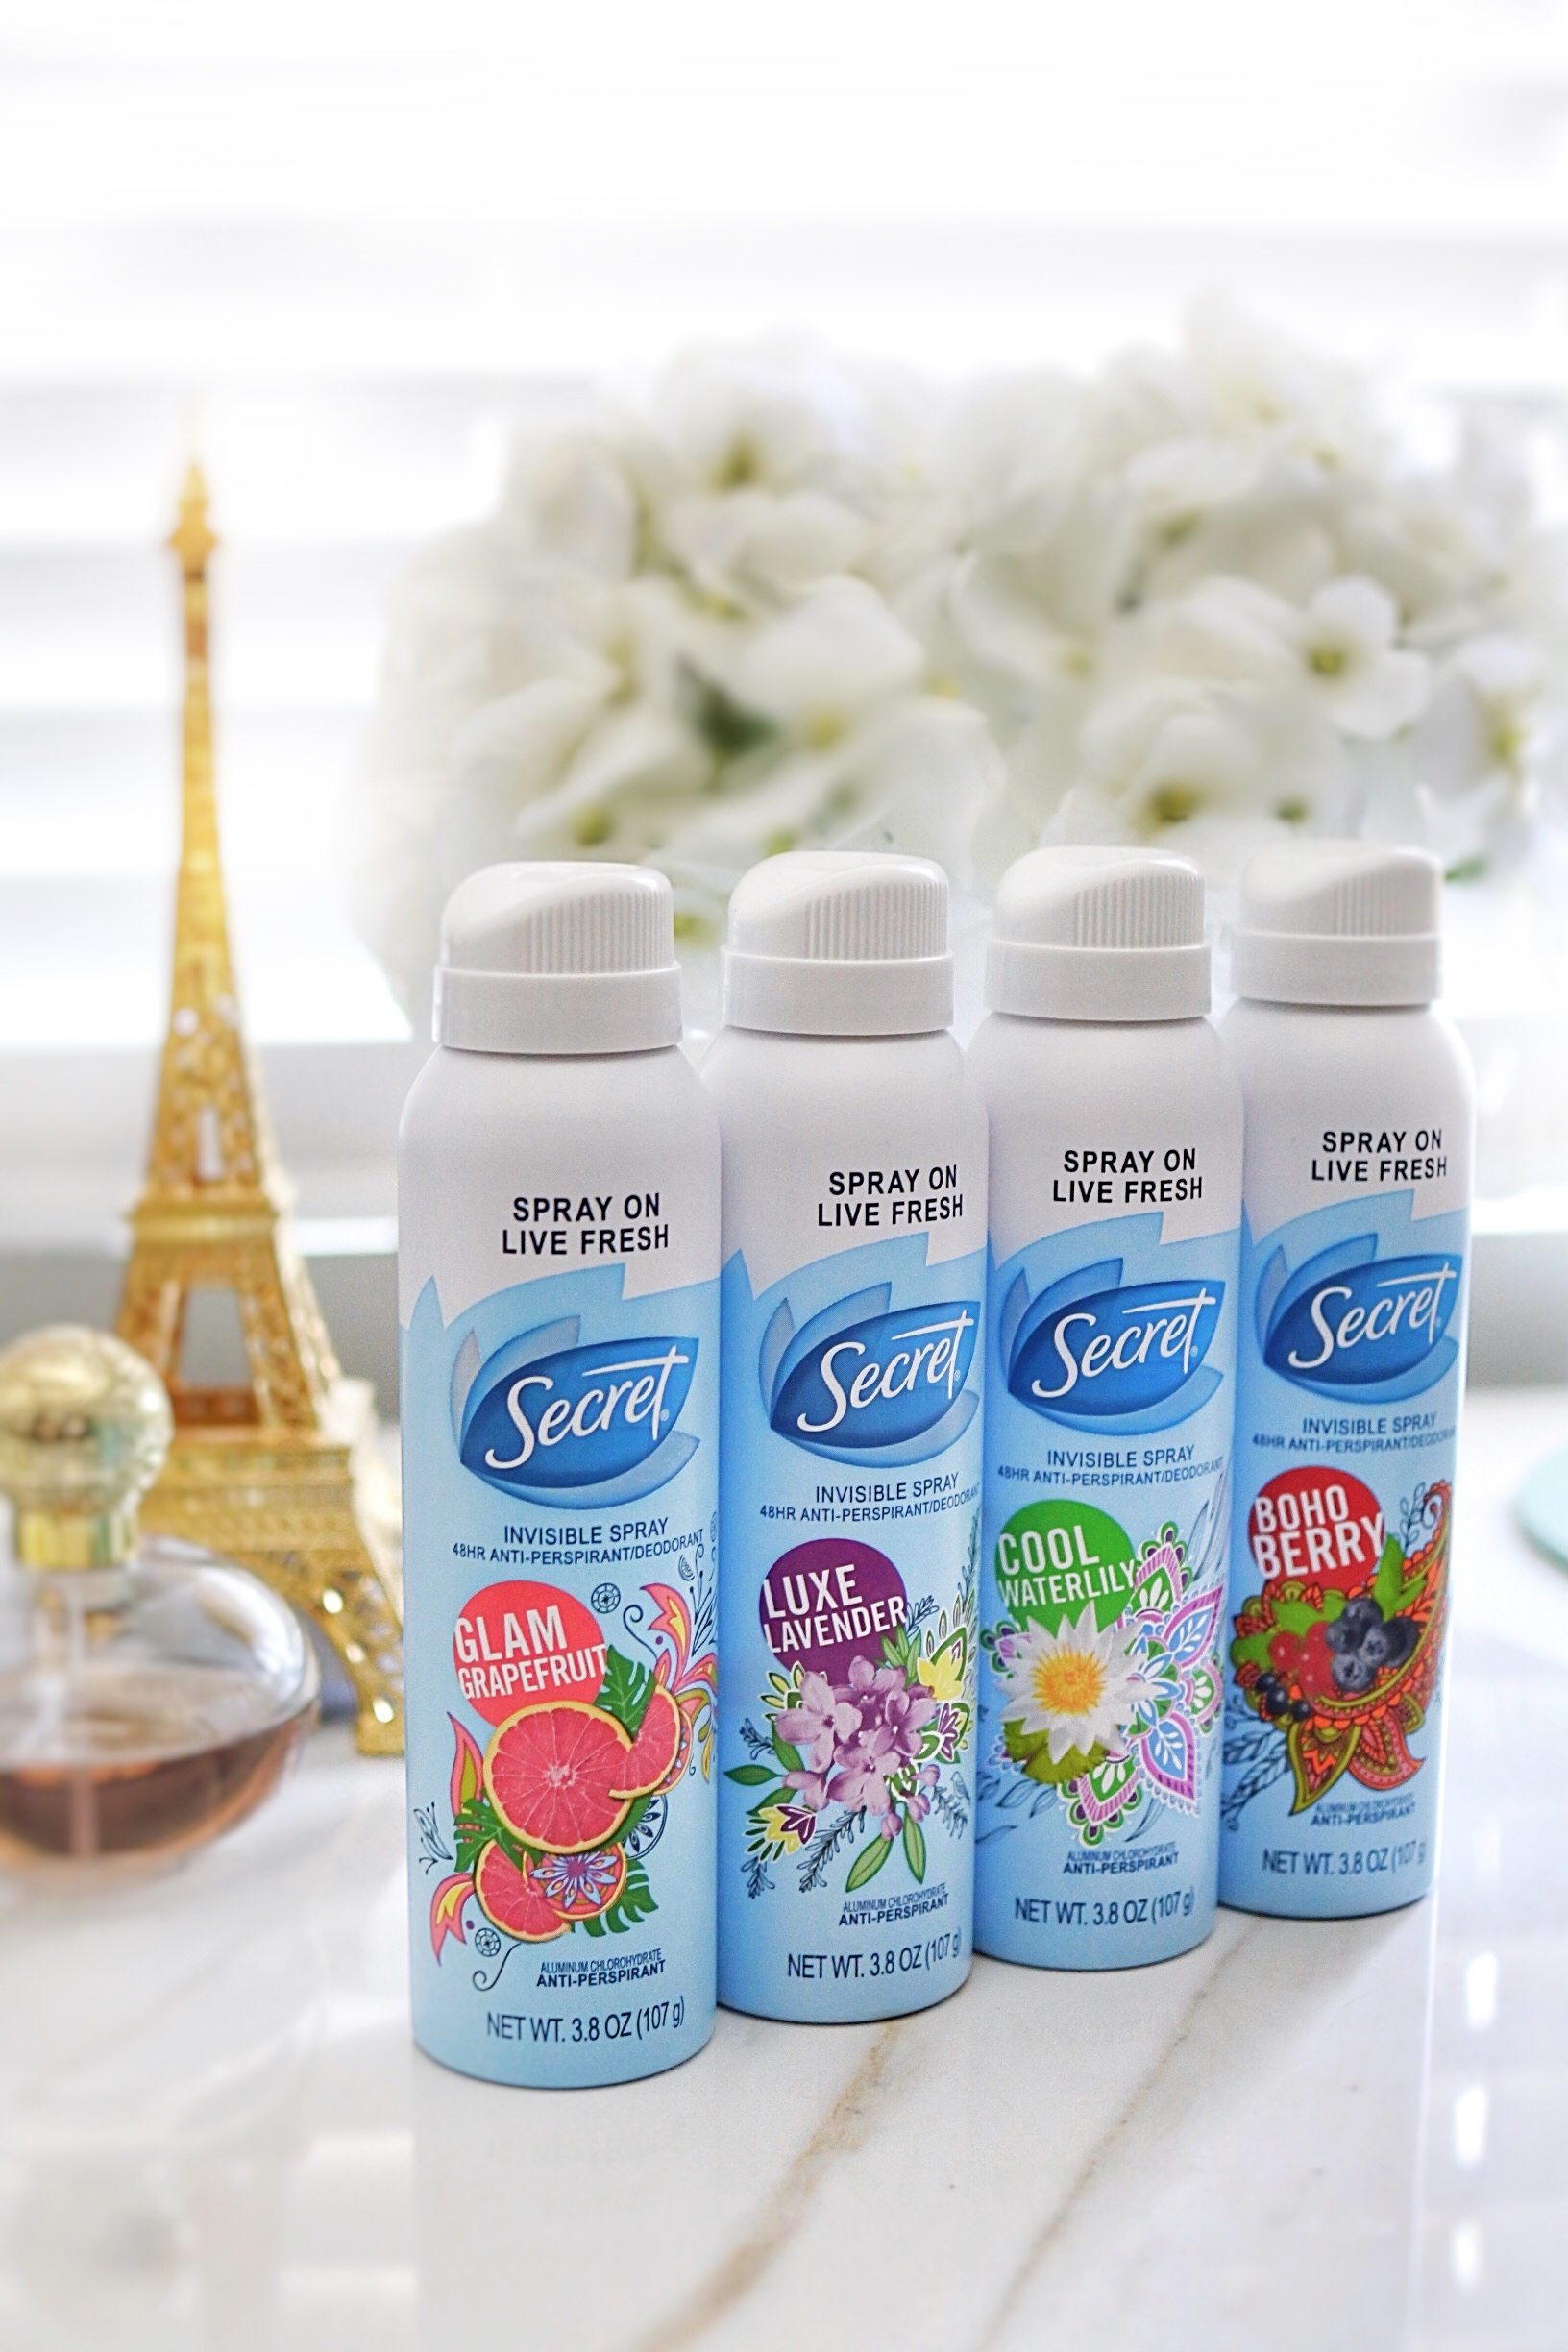 Secret Invisible Spray Deodorant in 4 NEW Scents!